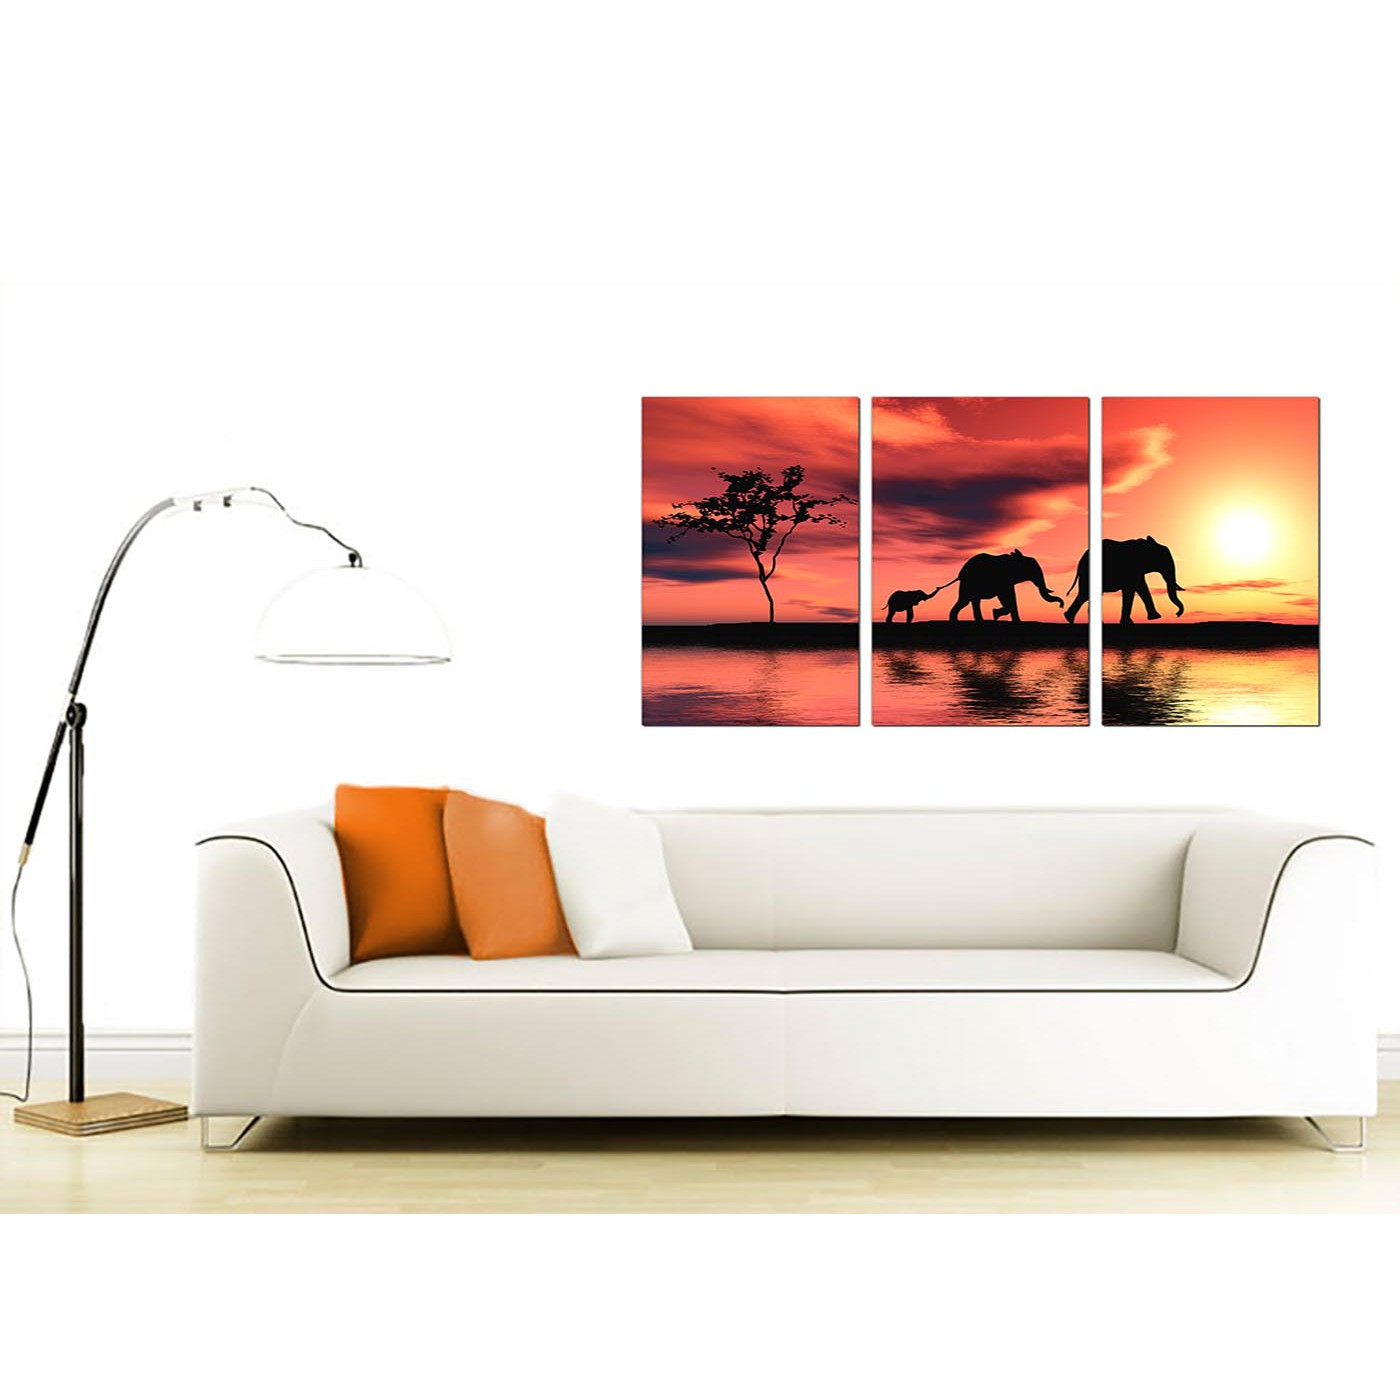 Living Room Wall Art Amazon